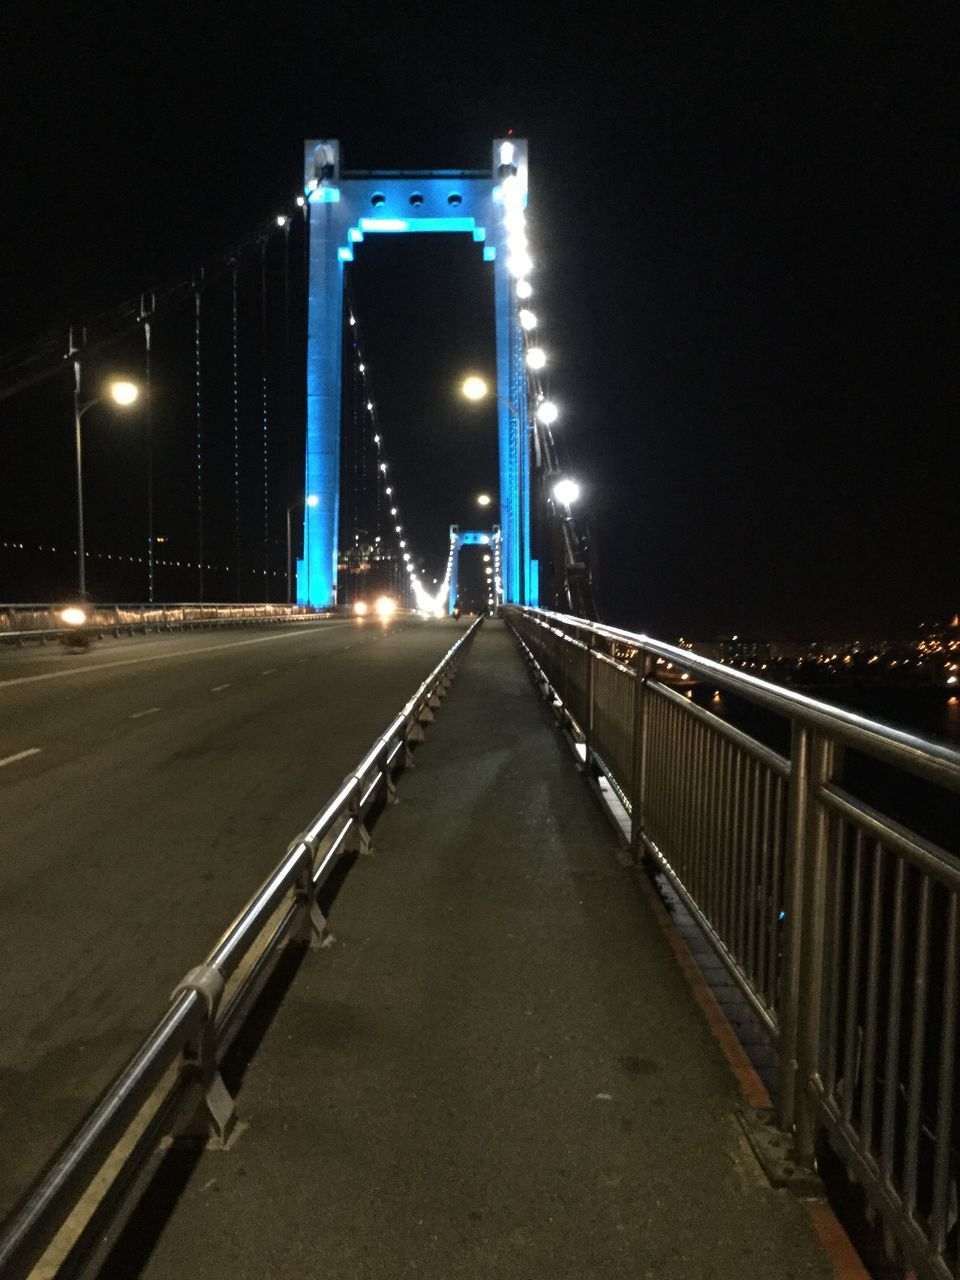 illuminated, night, bridge - man made structure, connection, architecture, the way forward, built structure, suspension bridge, transportation, outdoors, no people, road, sky, chain bridge, city